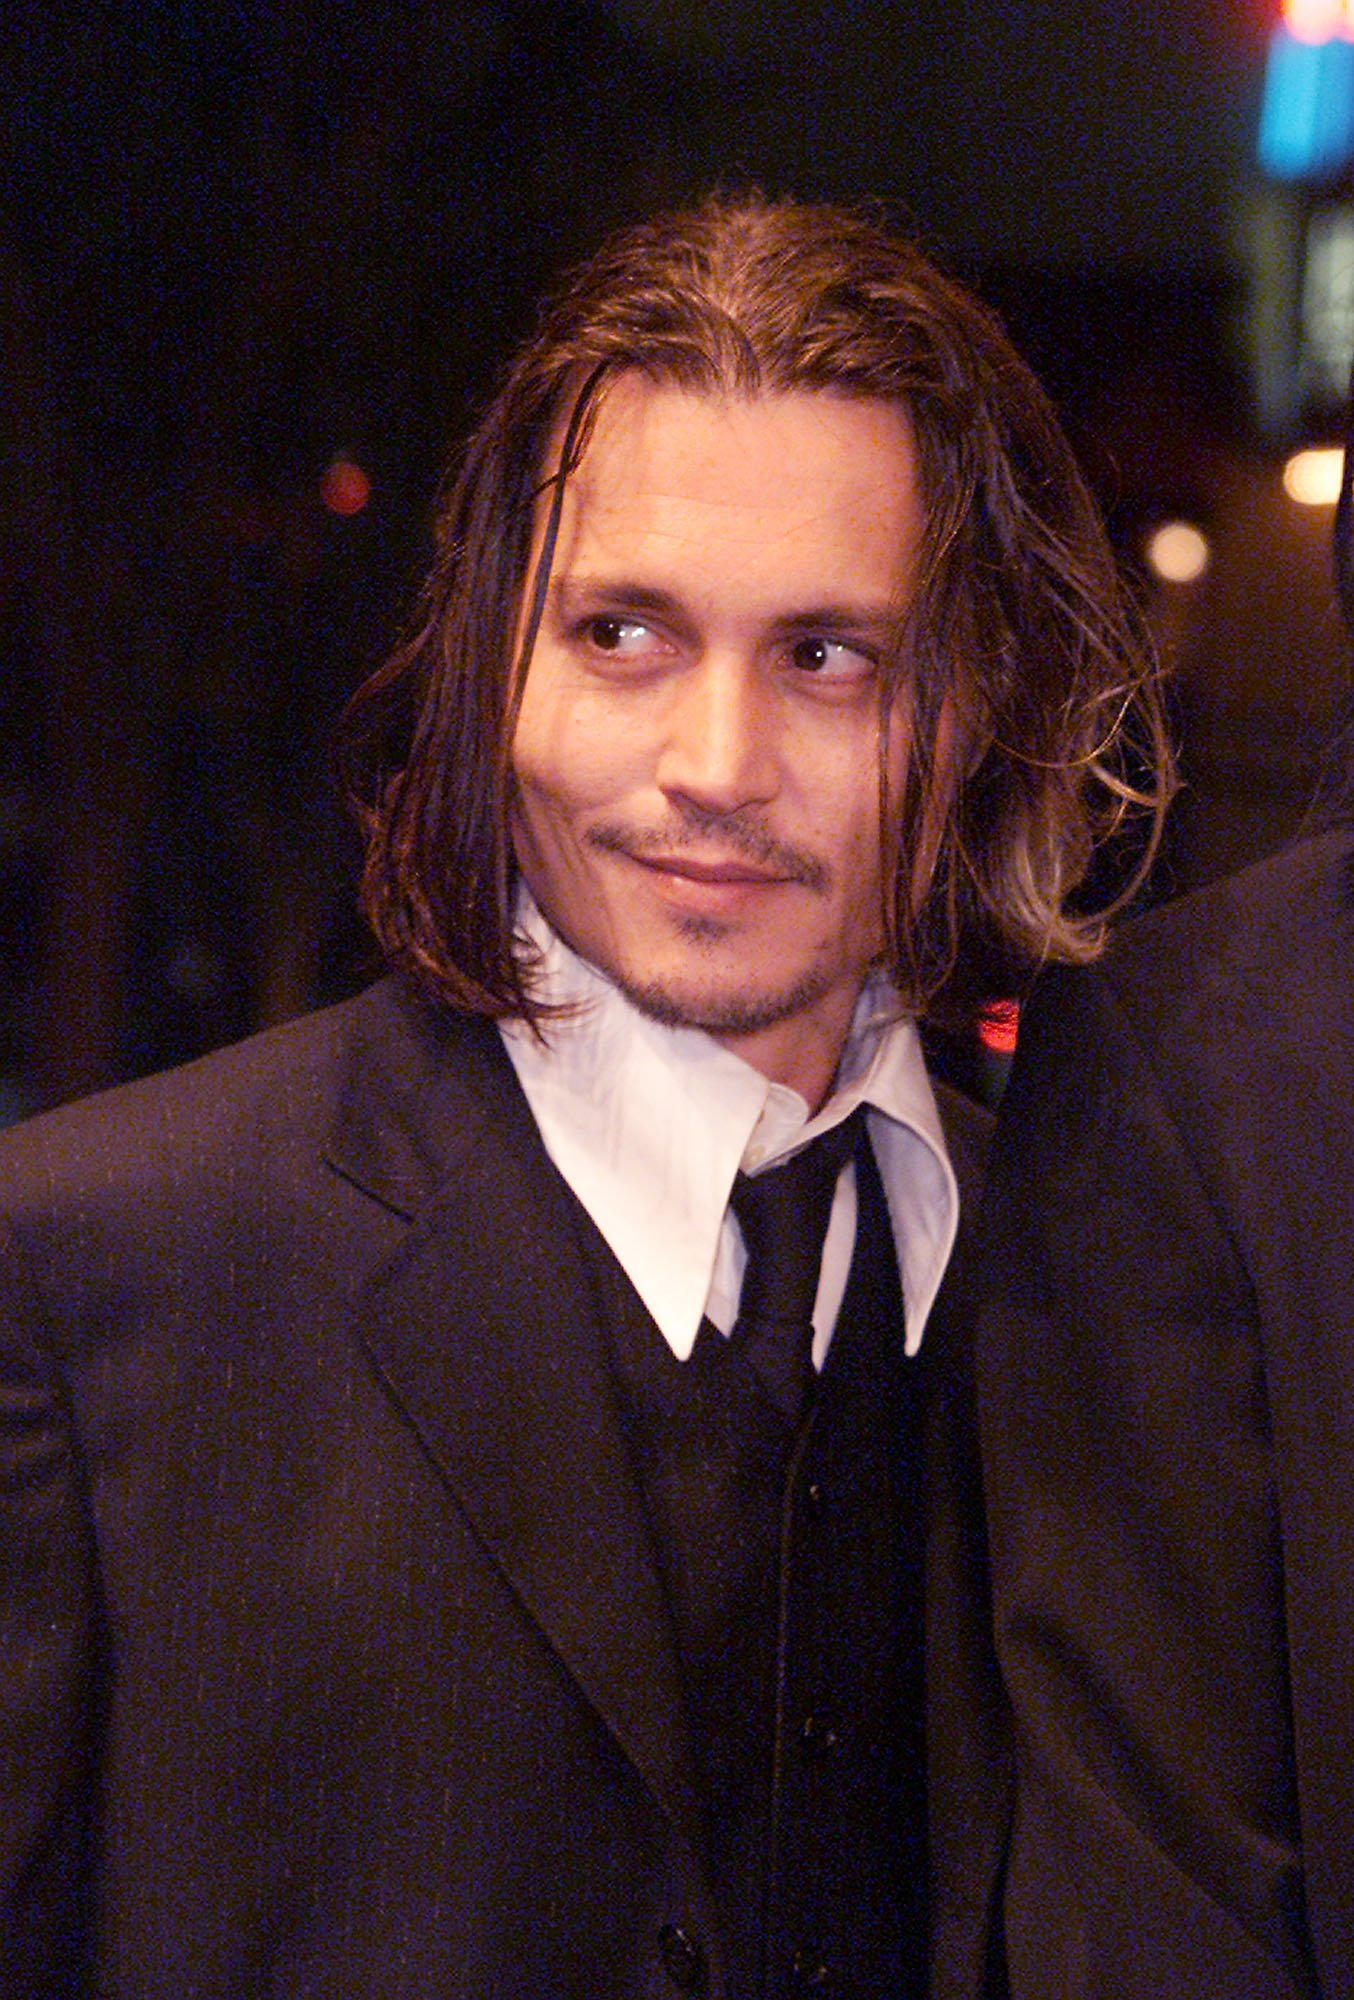 Image Source: Getty Images/Photo of Johnny Depp